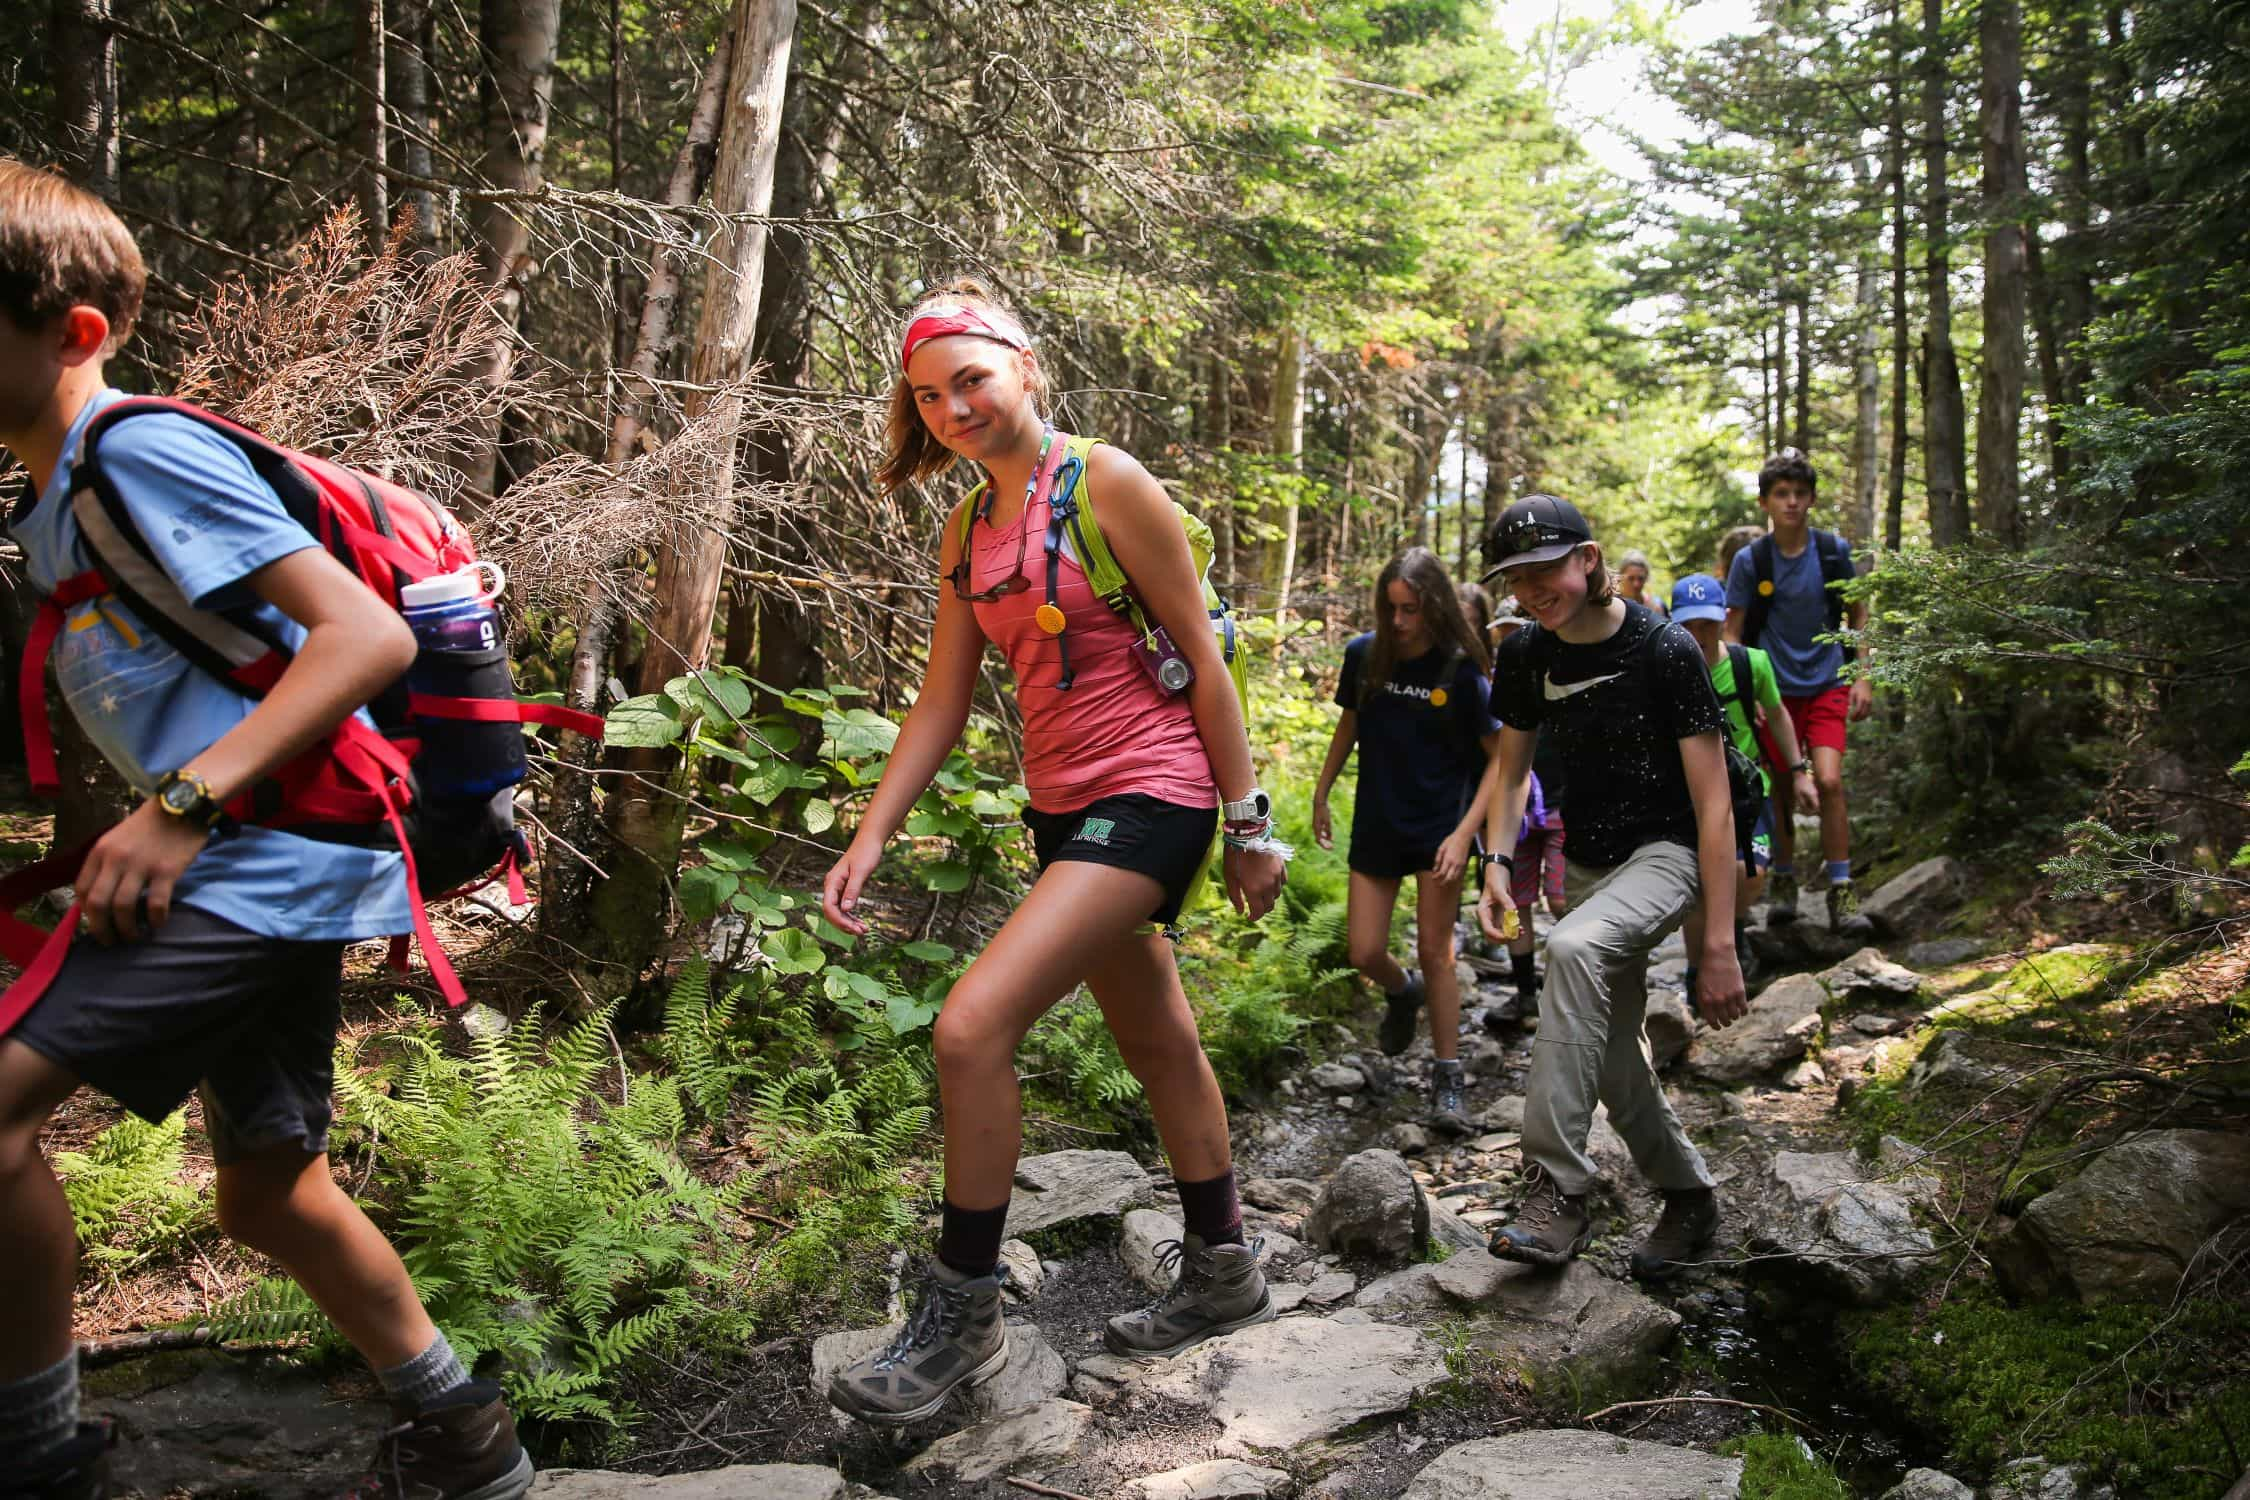 This teen summer adventure program traversing some Rocky terrain in New England